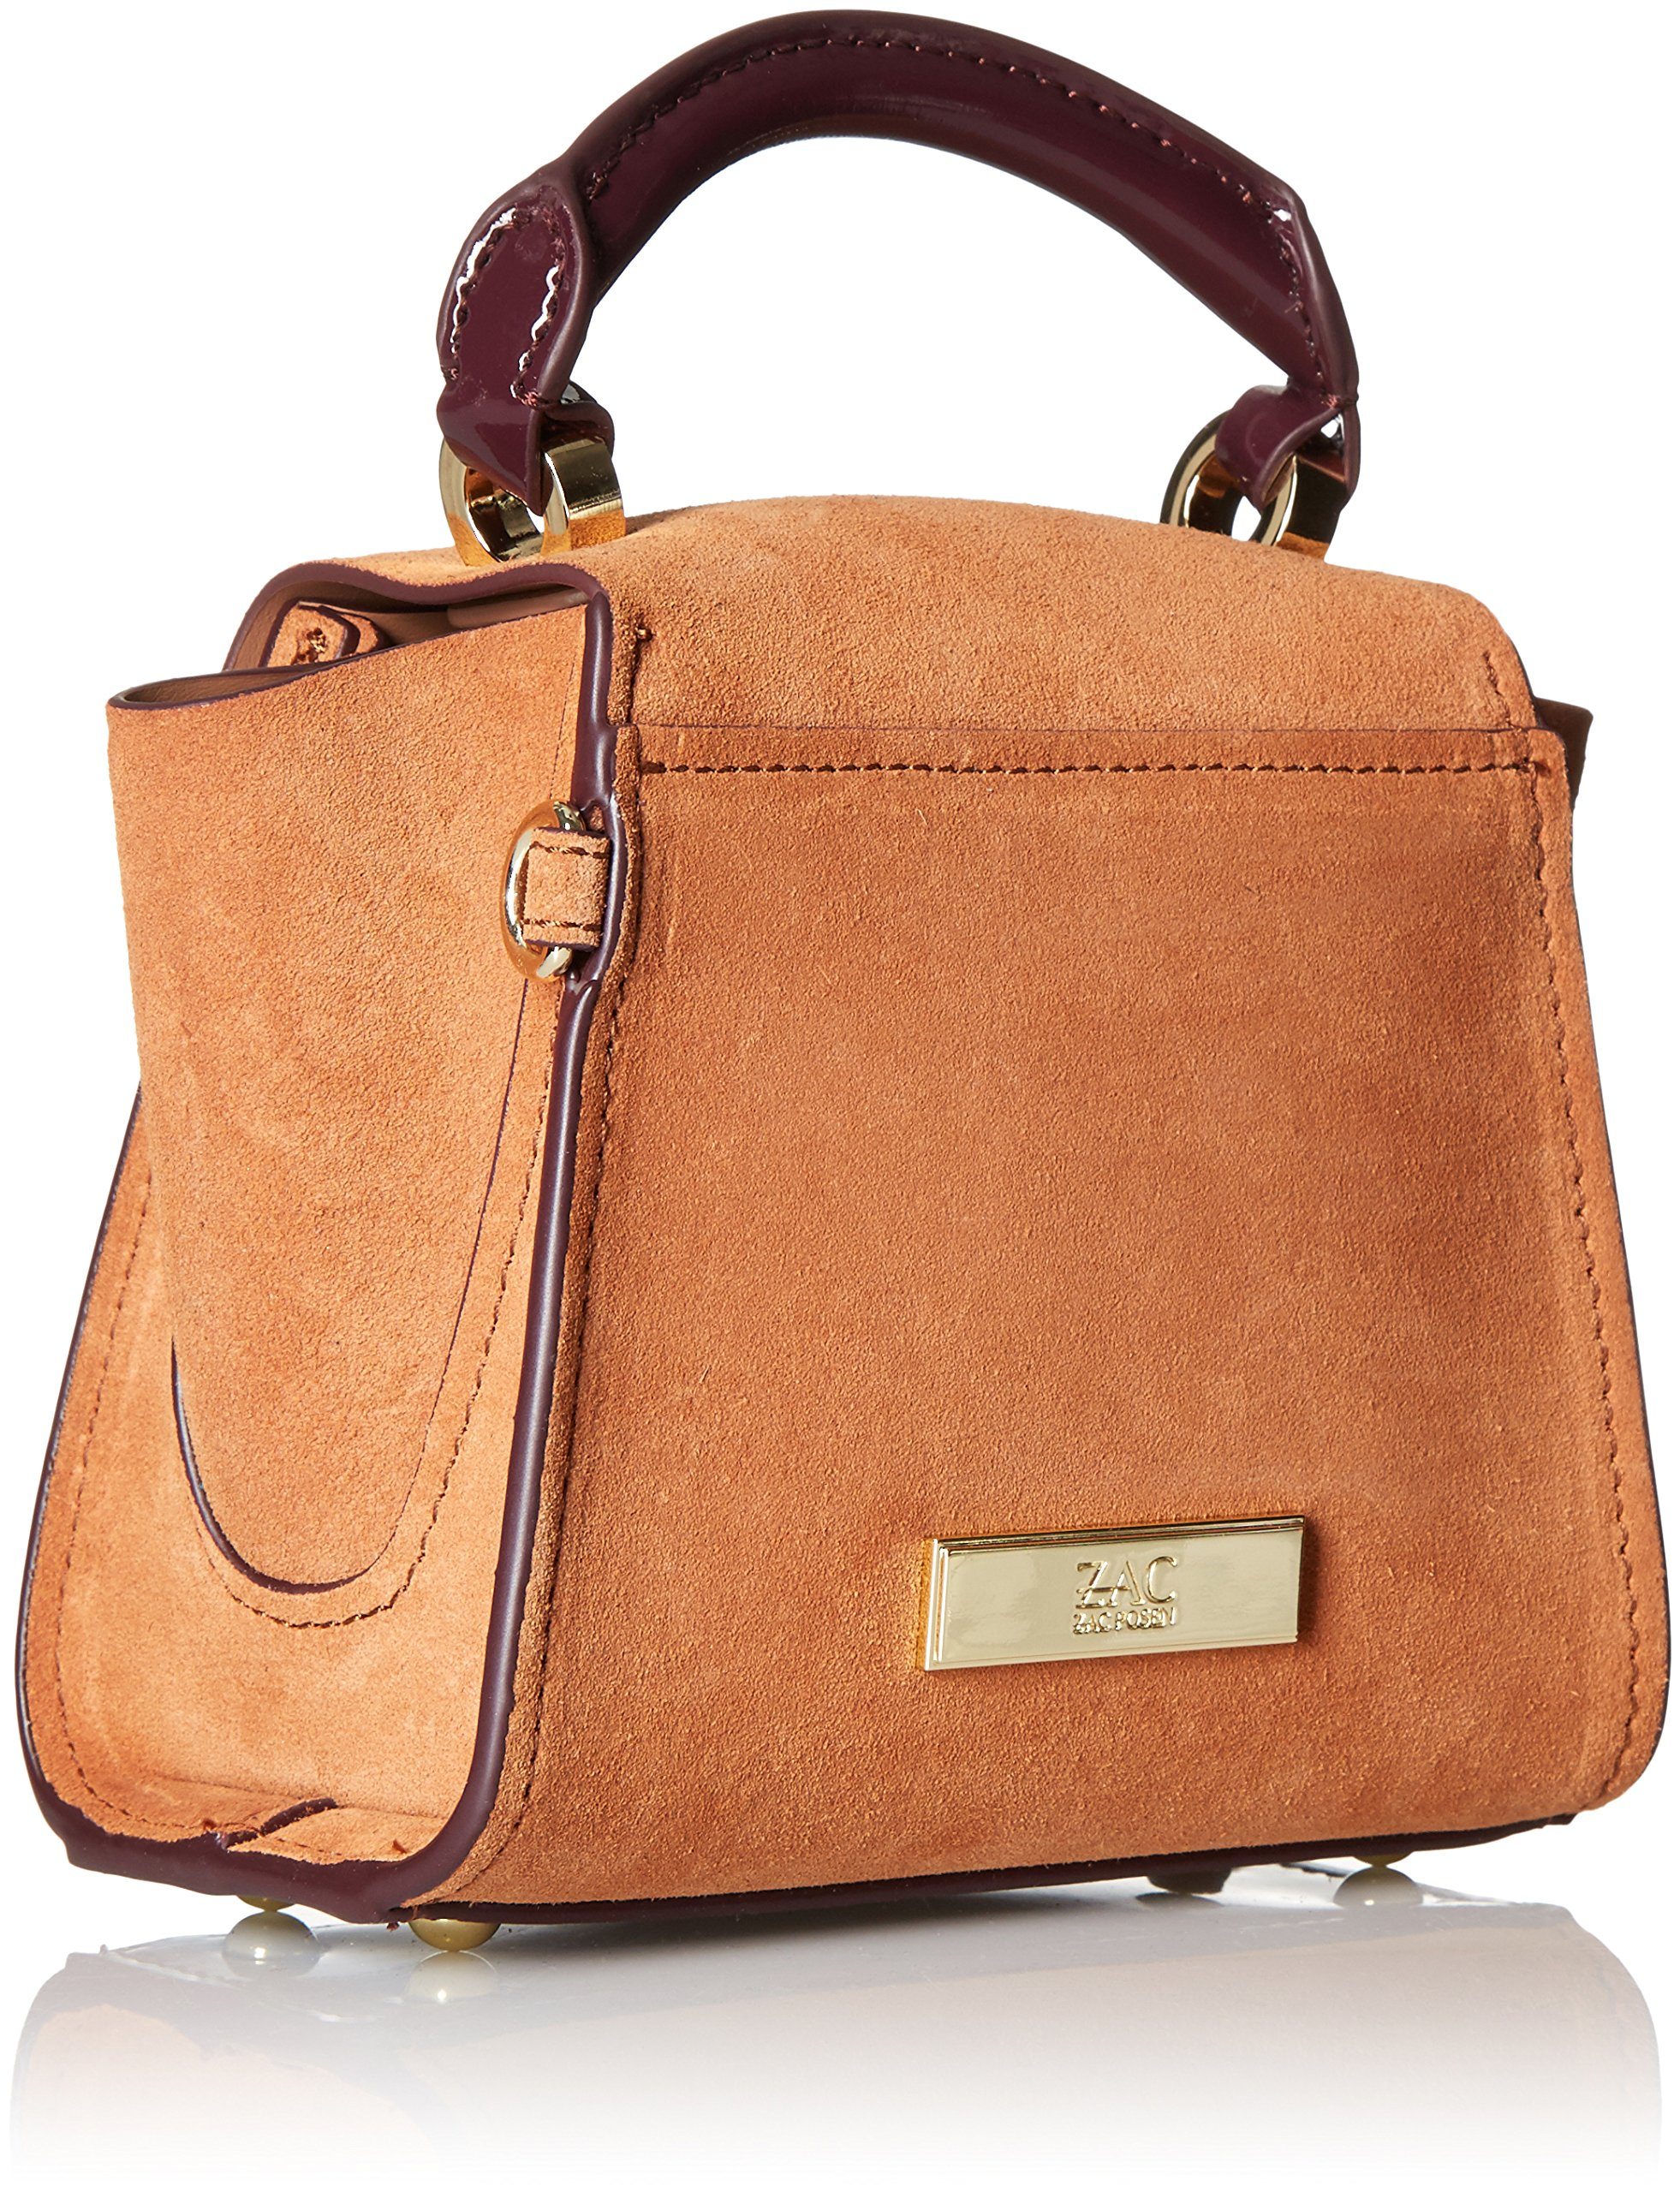 ZAC Zac Posen Eartha Iconic Top Handle Mini-Suede Colorblock W/ Baglace by ZAC Zac Posen (Image #2)